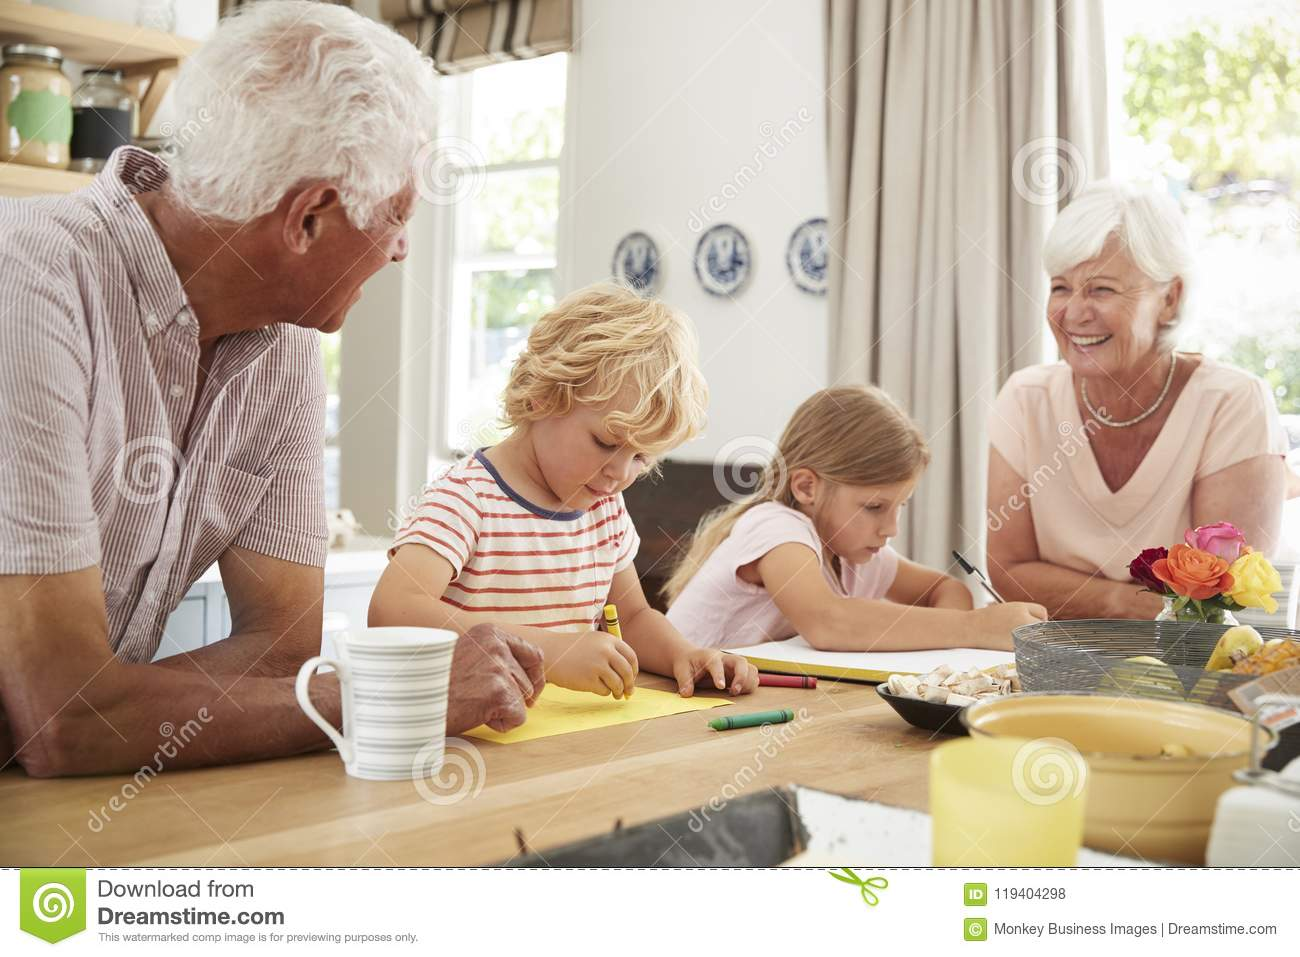 Smiling grandparents with grandkids in the kitchen, close up